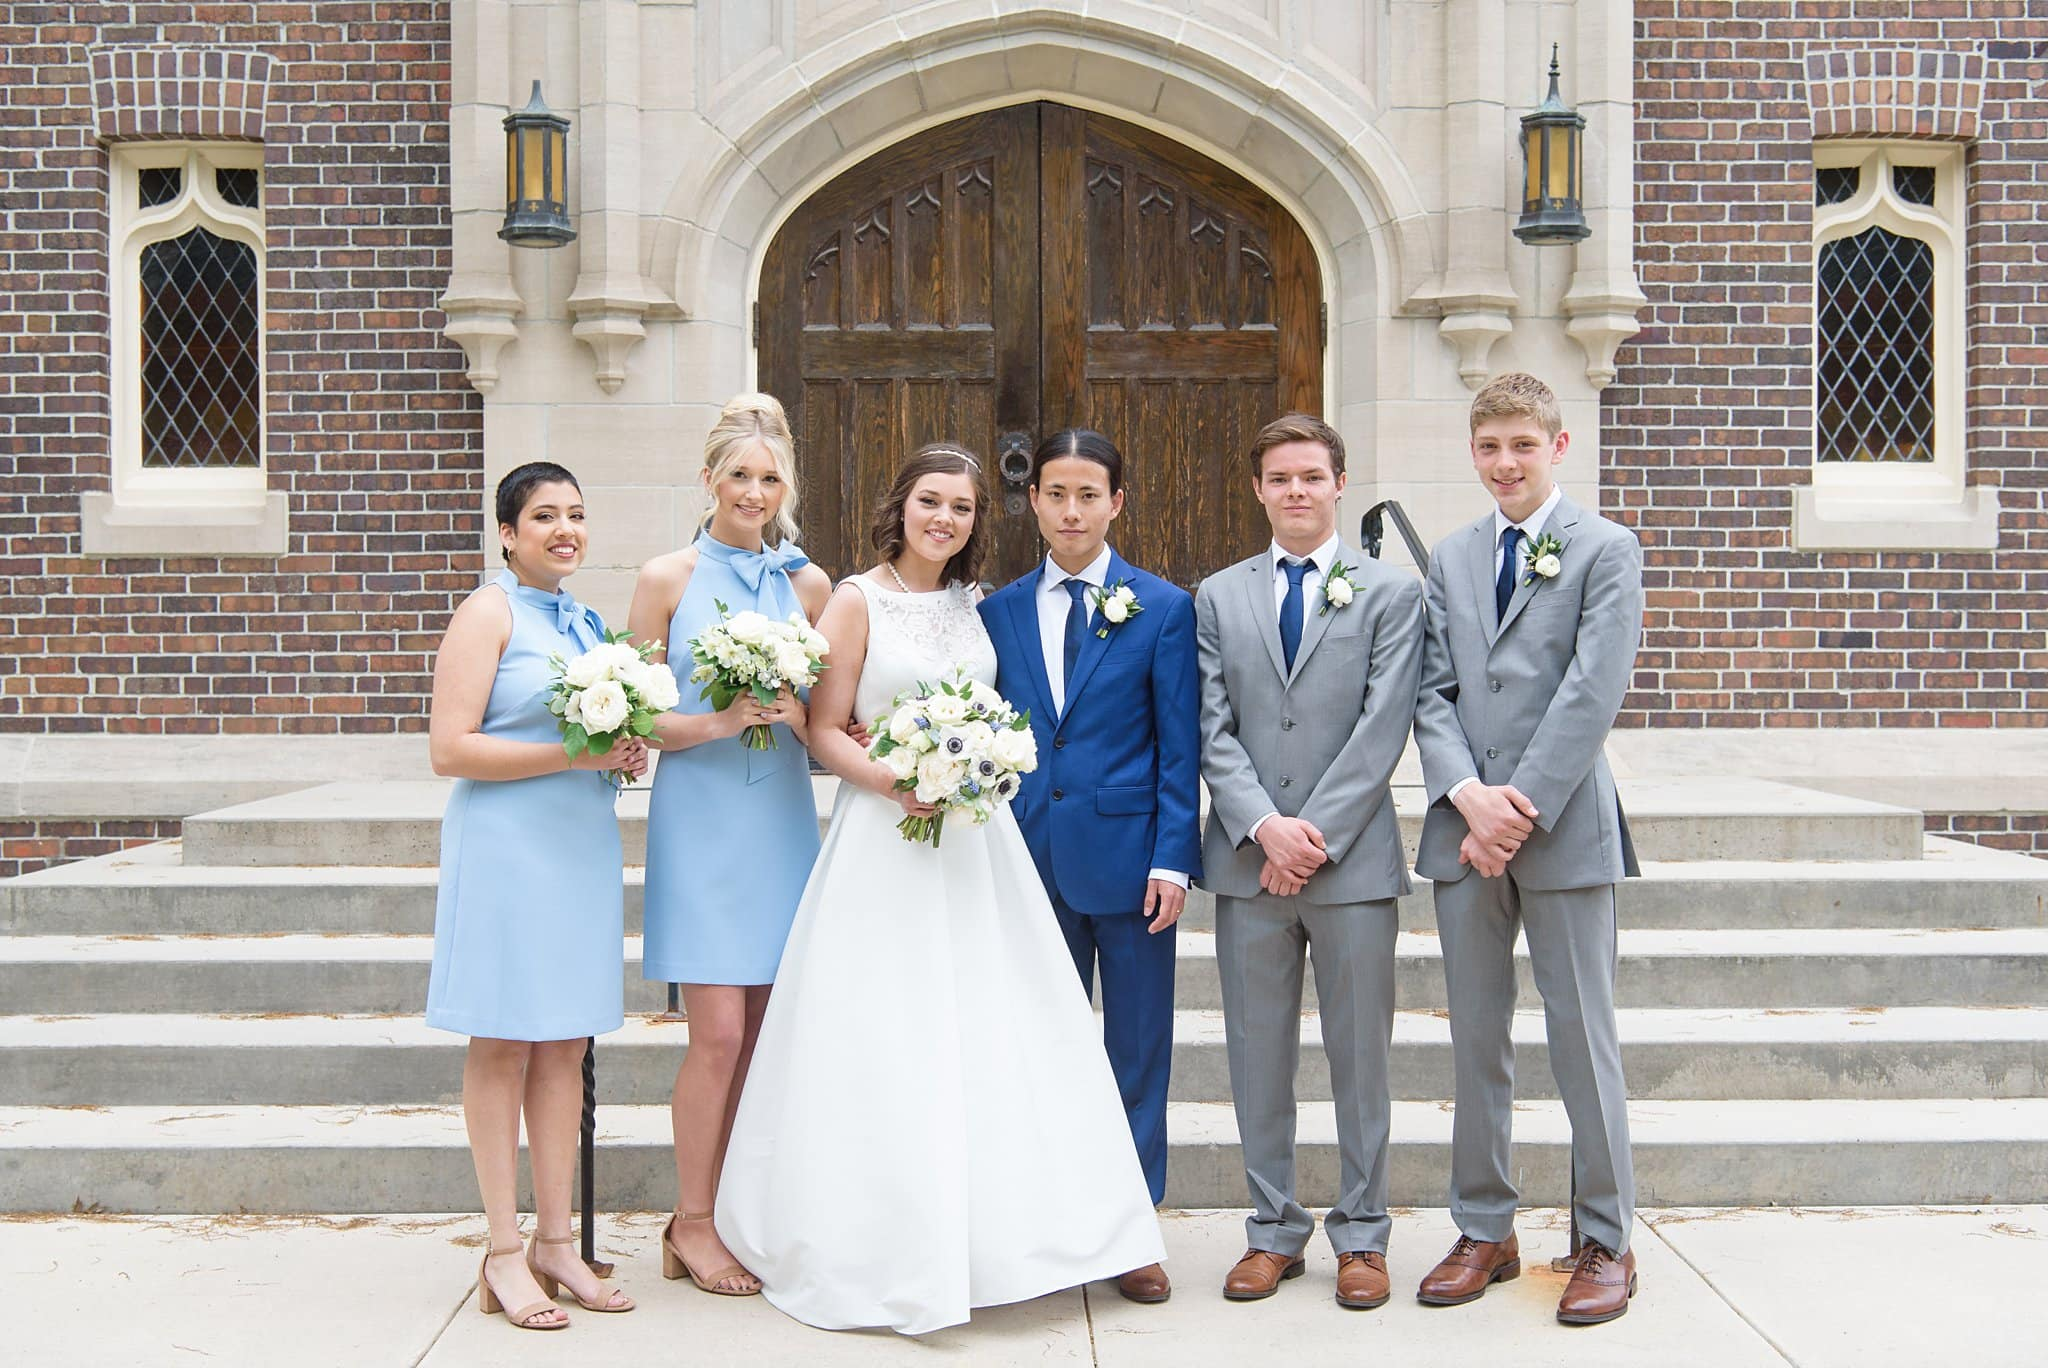 bridal party photos at grinnell college in front of herrick chapel